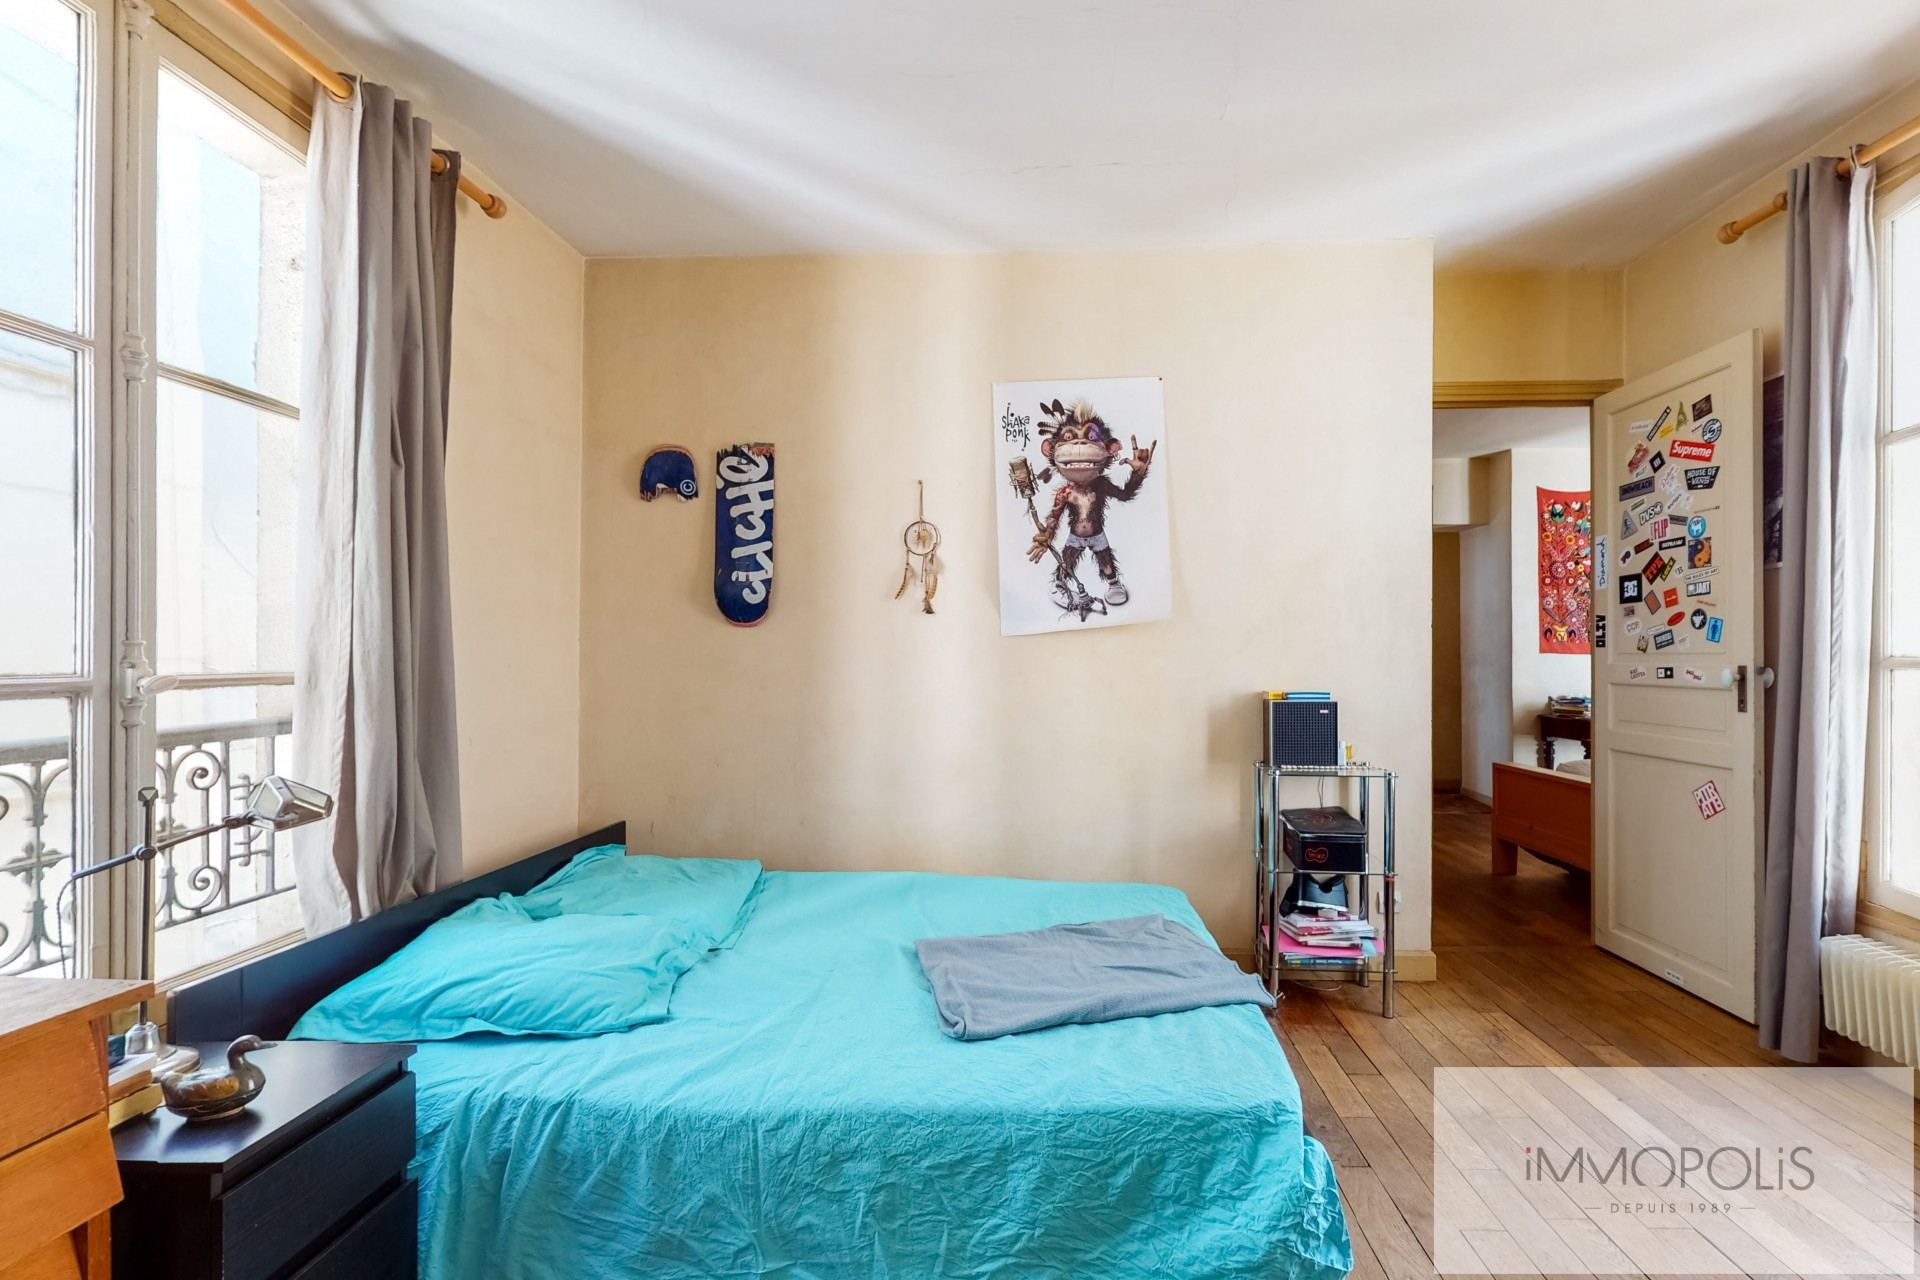 Appartement atypique, plein de charme, Rue Richard Lenoir – Paris XIème 6